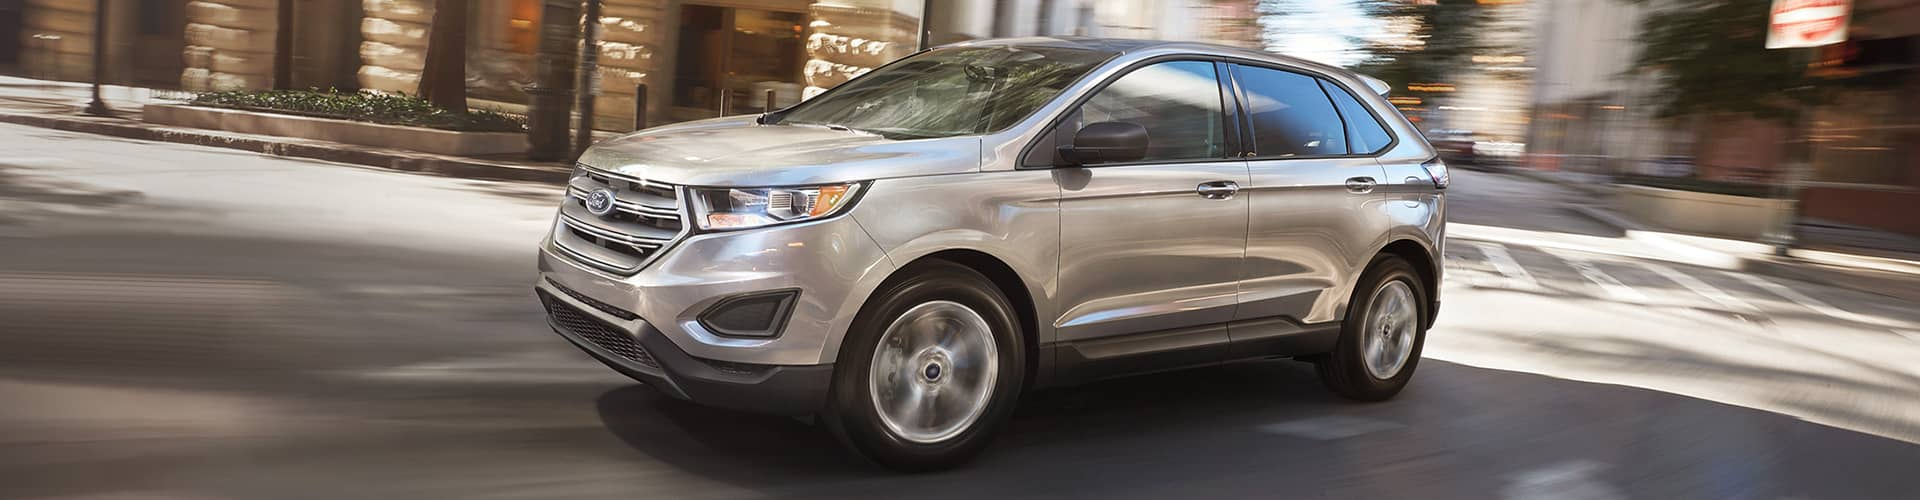 Ford Edge Shop All Parts